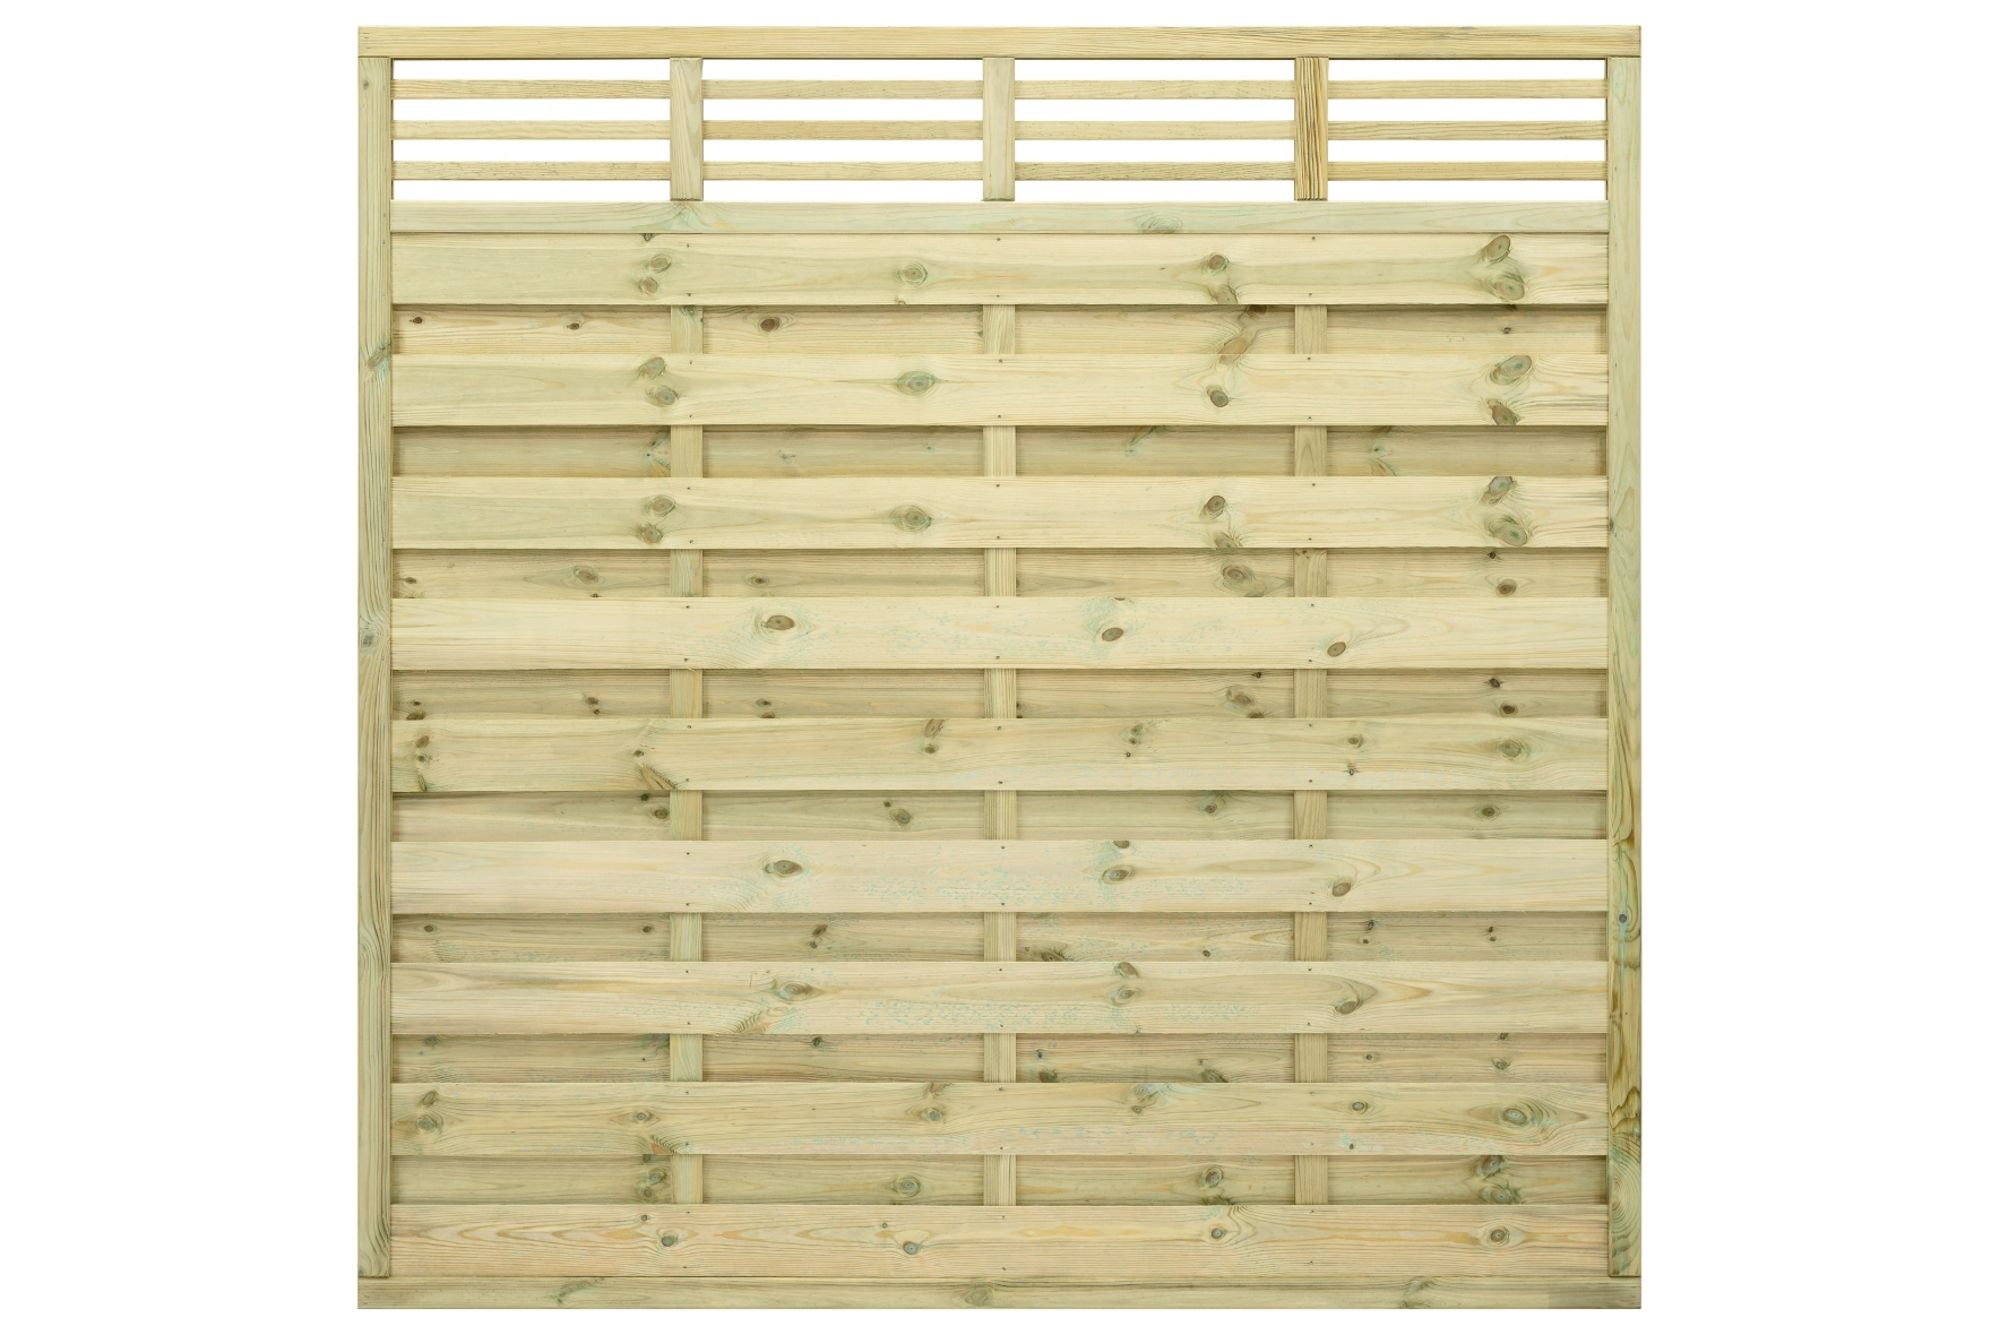 Grange Lille Decorative Horizontal Trellis Fence Panel (w)1.8 M (h)1.8m, Pack Of 4